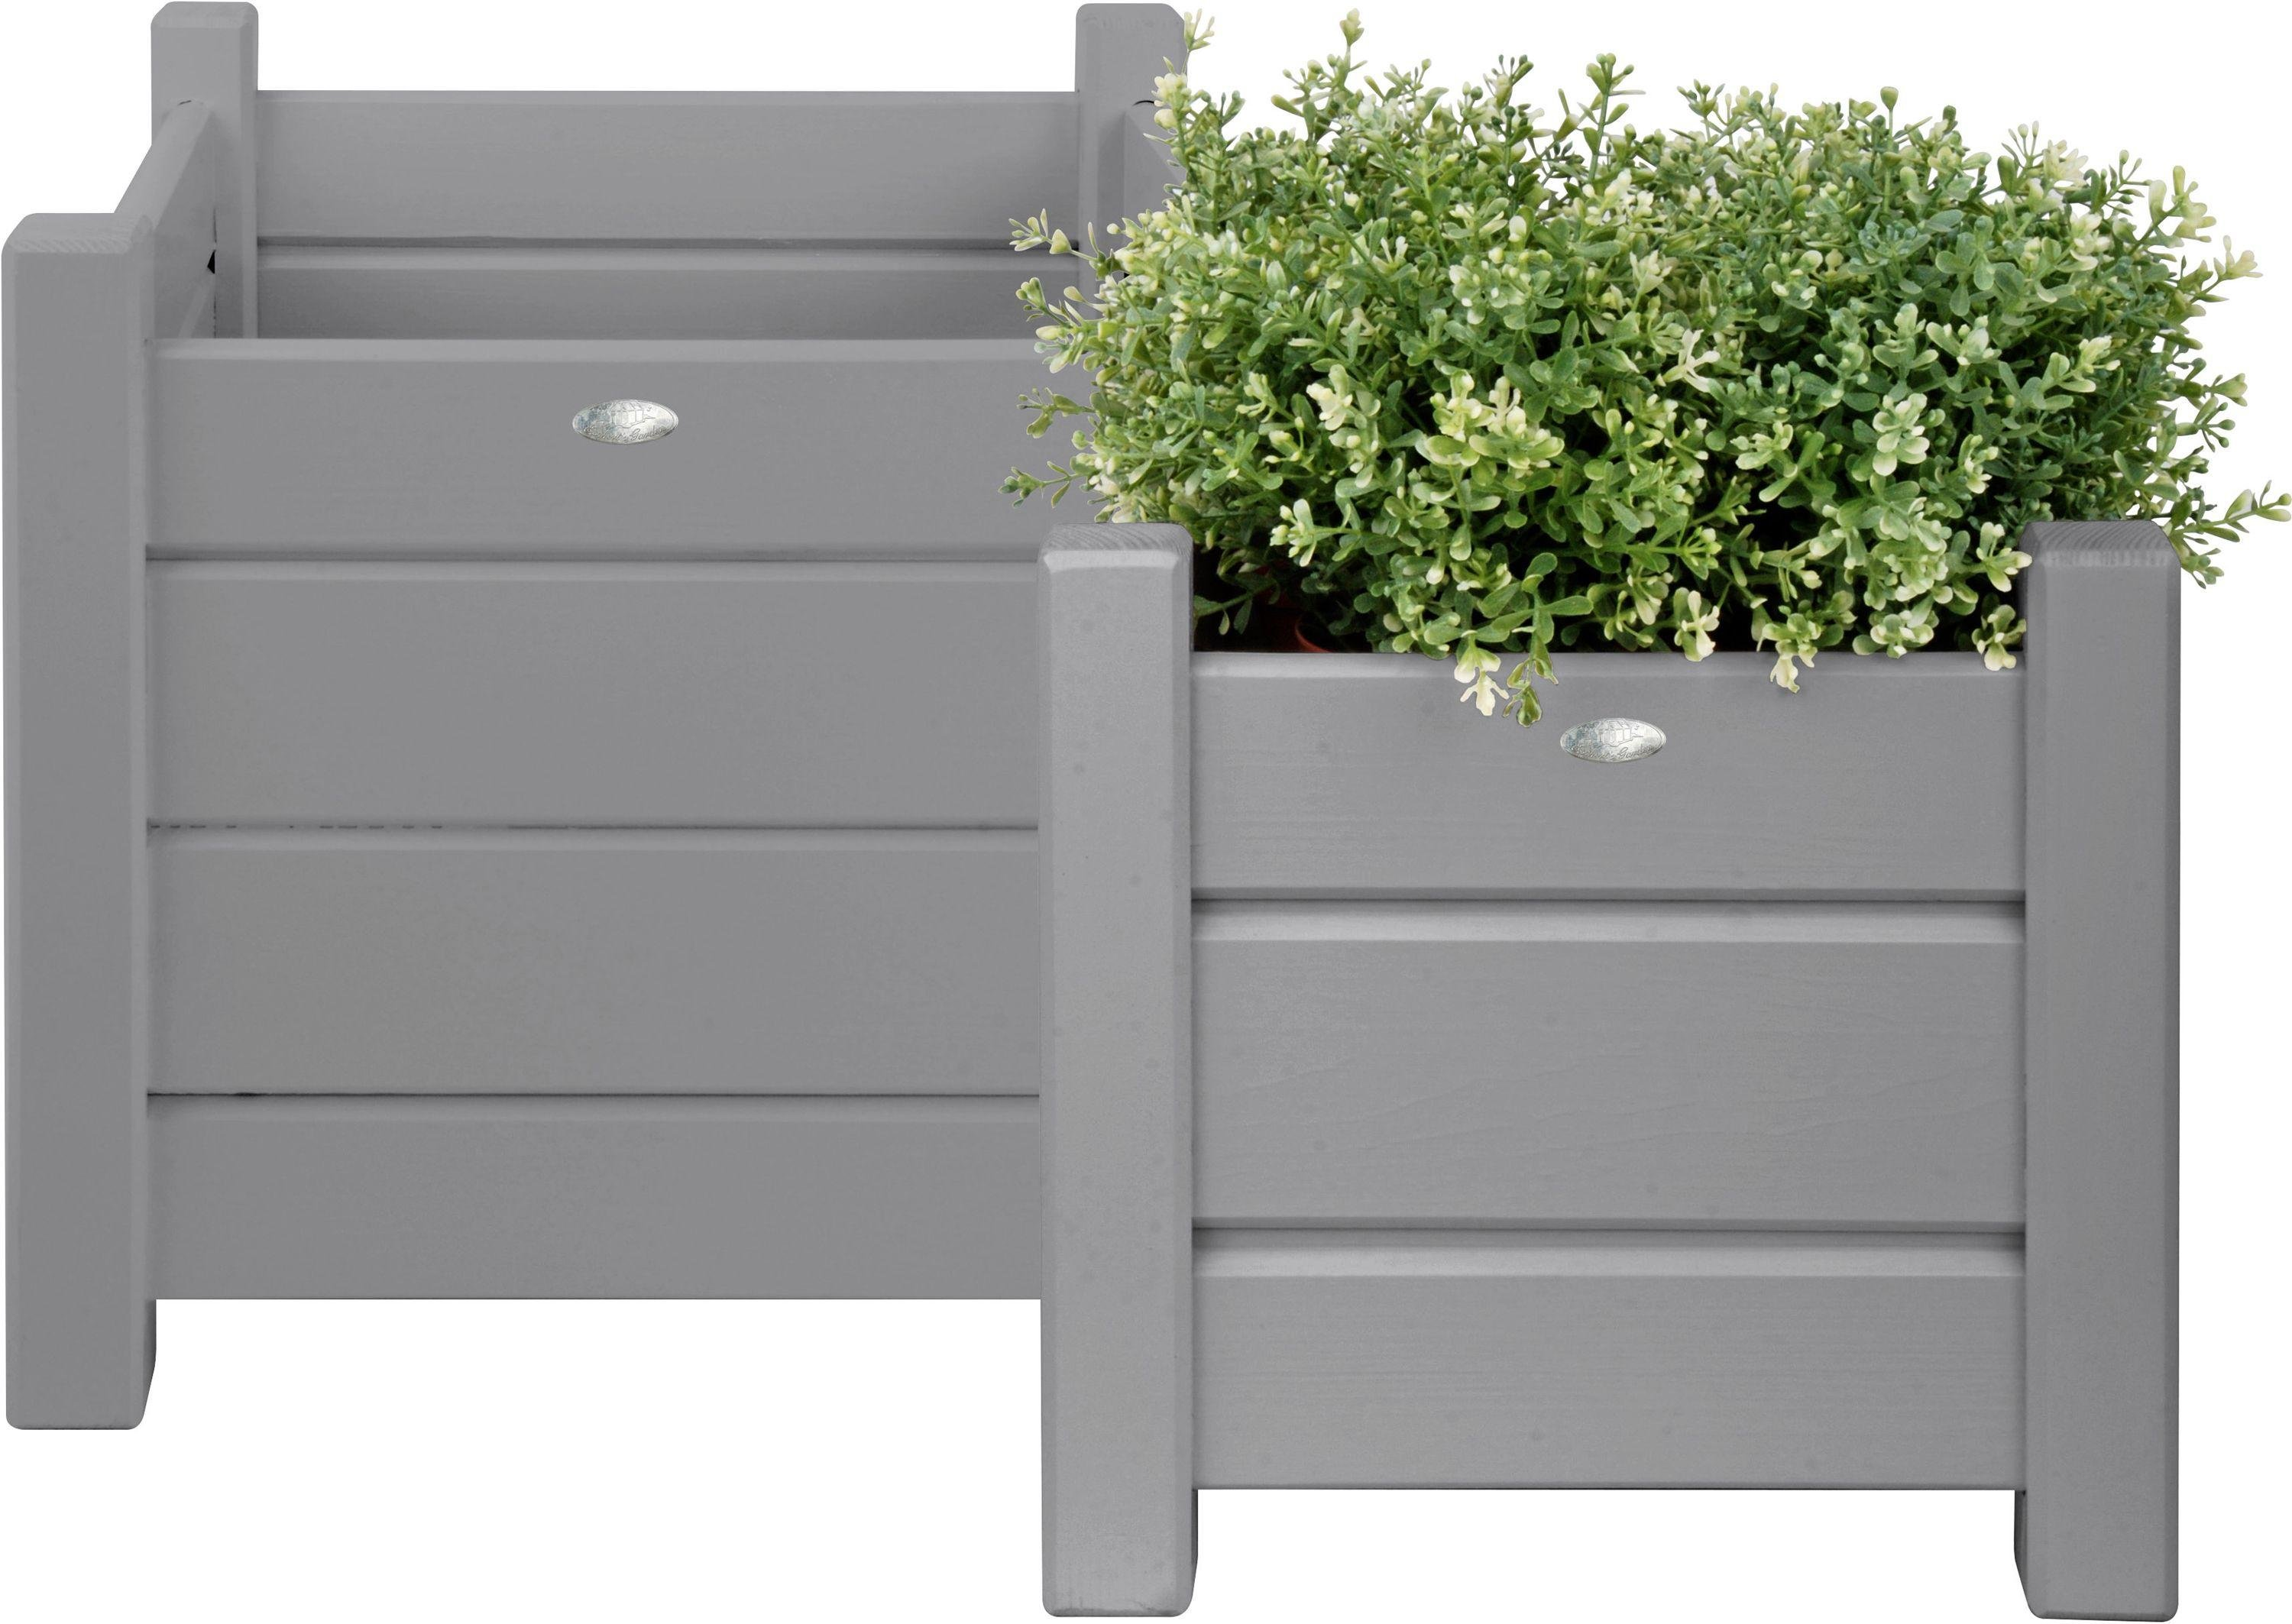 Fallen Fruits - Grey Square Planters - Set of 2